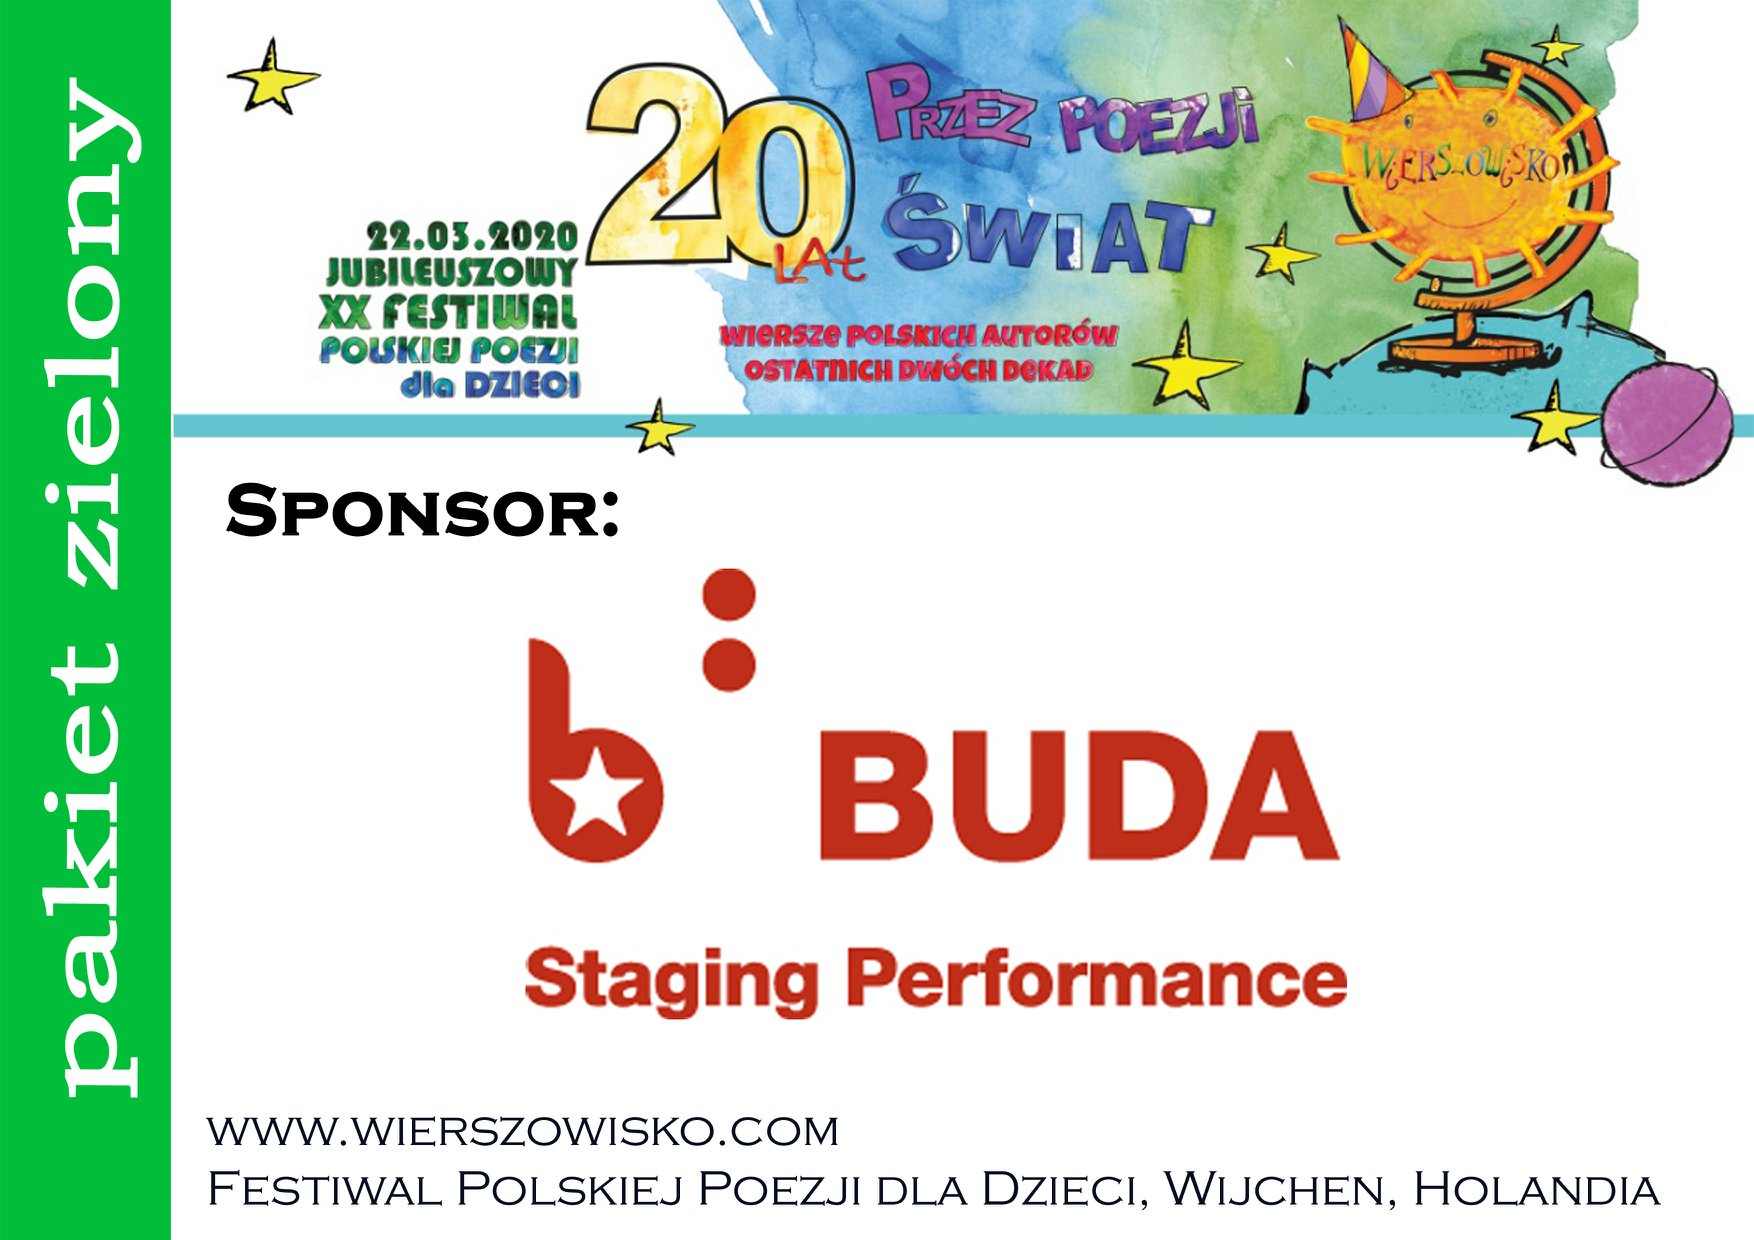 Buda Staging Performance